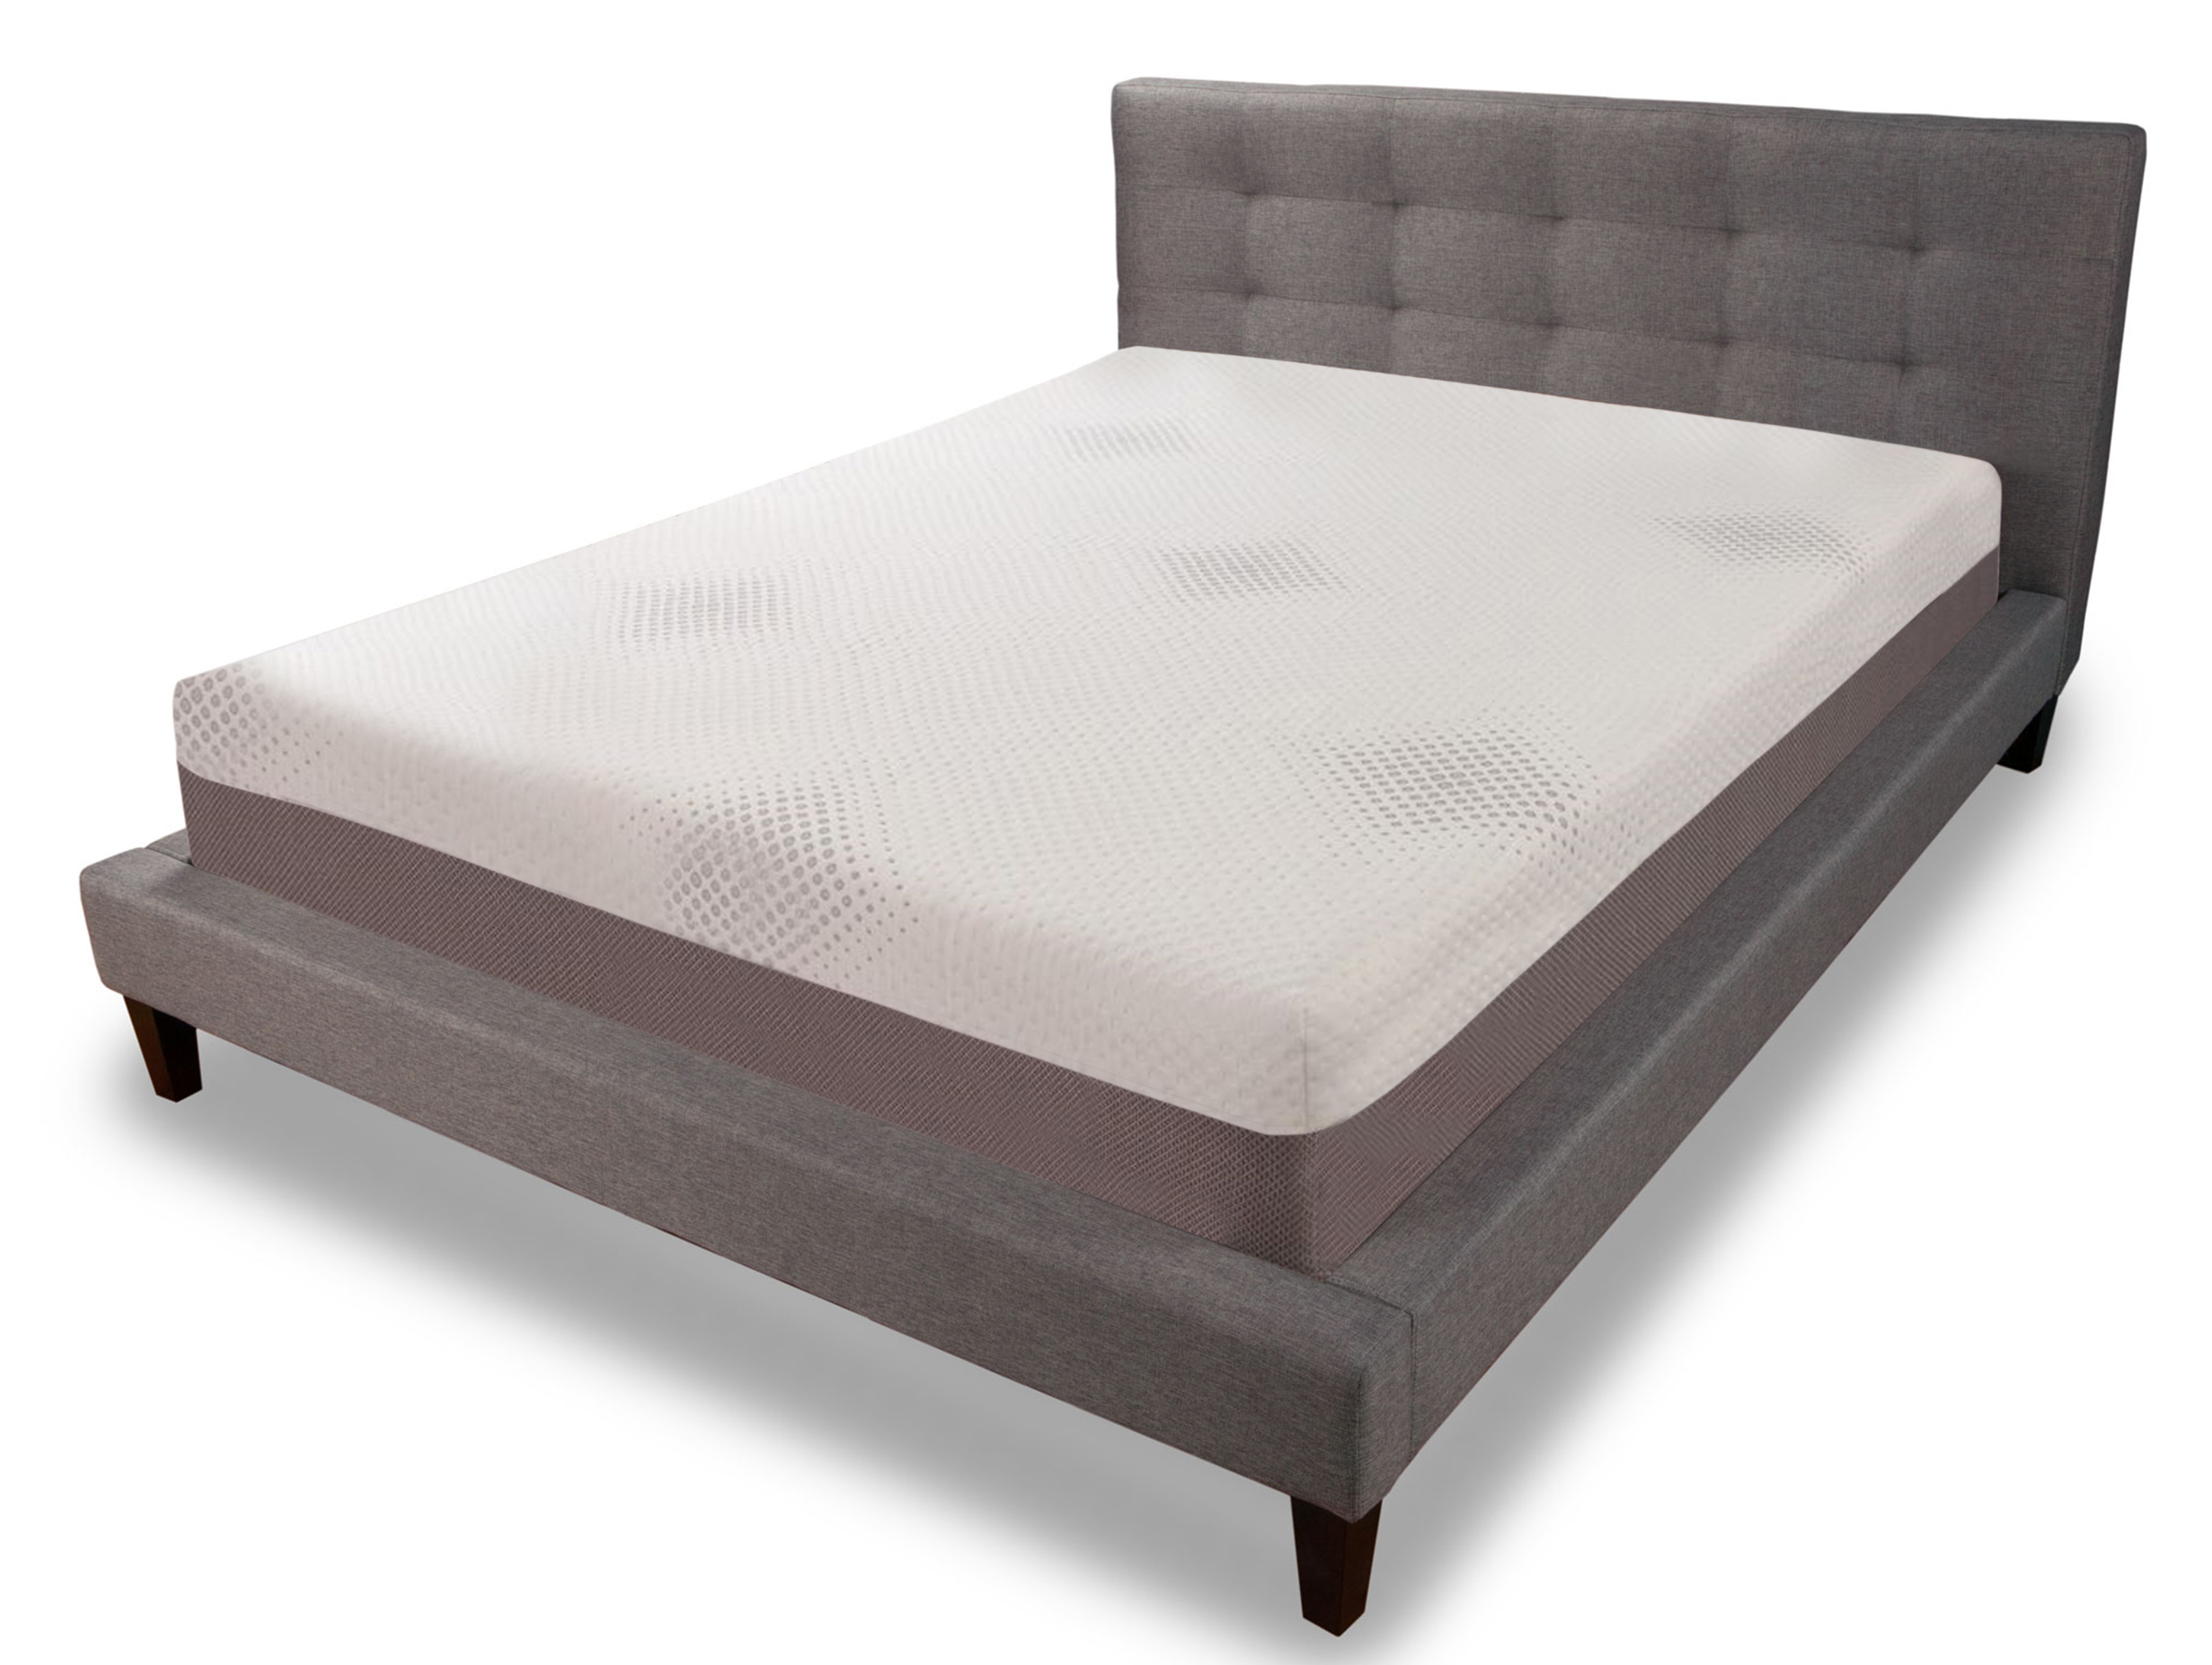 "Embody by Sealy 12"" Memory Foam Mattress by Sealy"